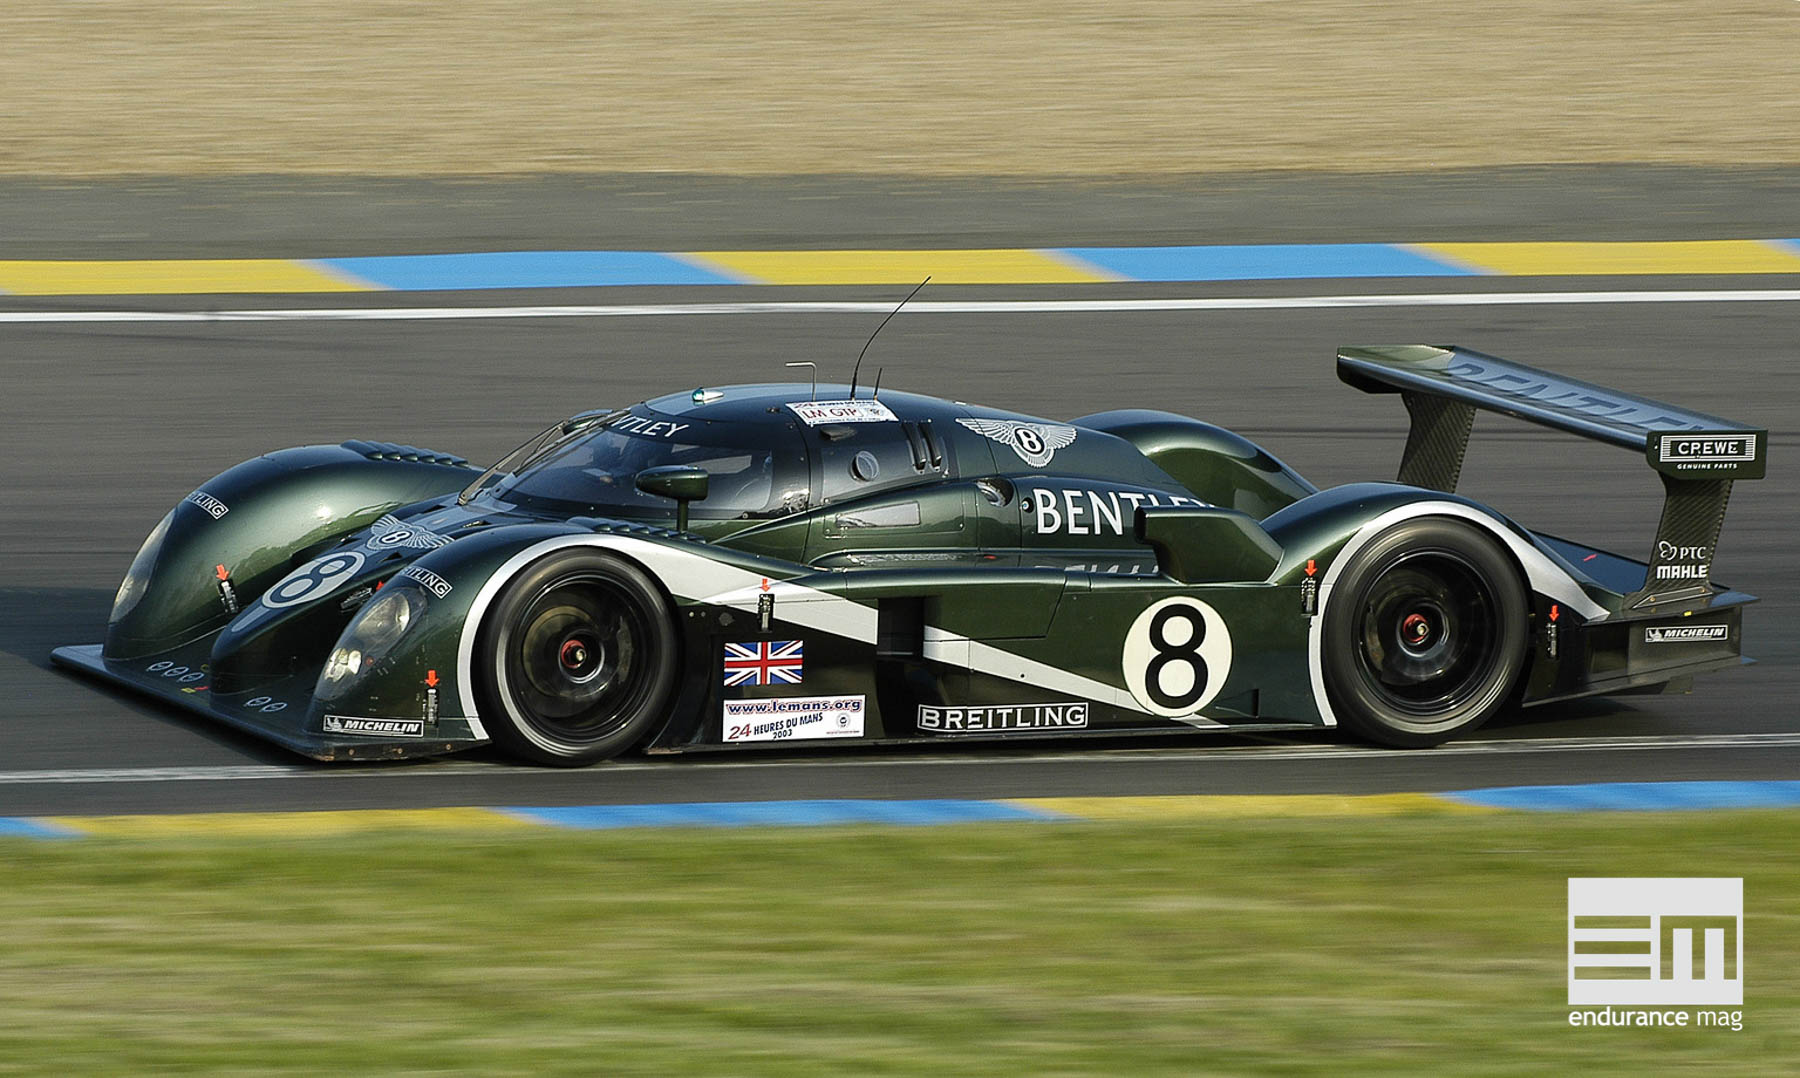 La Bentley Speed 8, dans sa configuration 2003